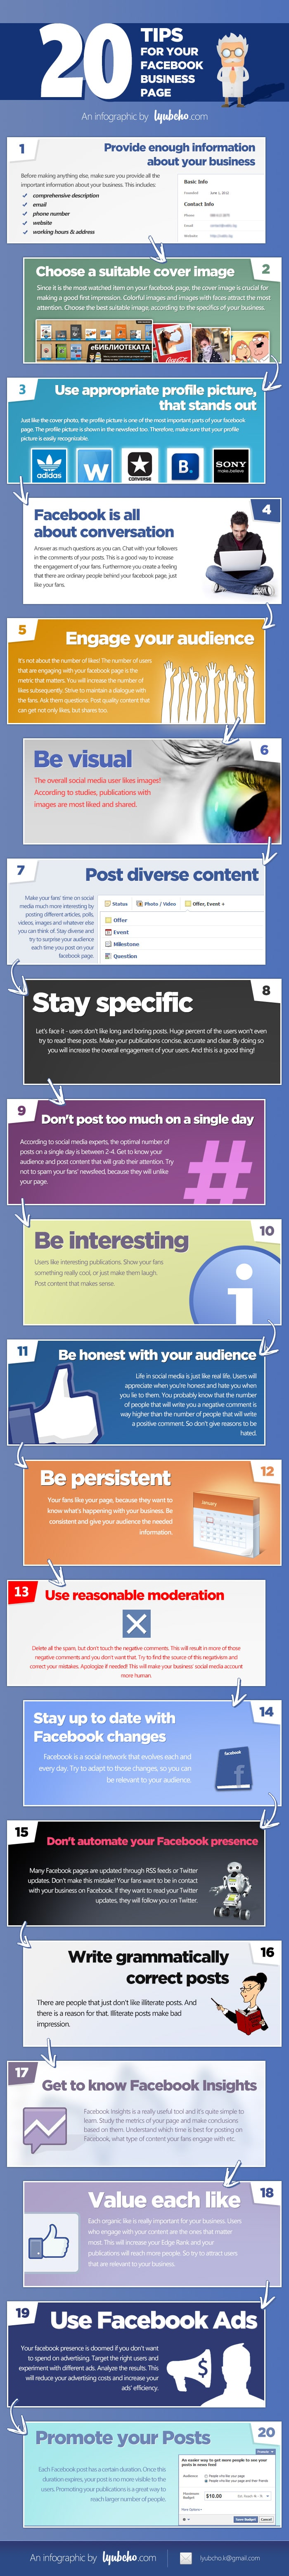 20 Vital Success Tips For Your Facebook Business Page [Infographic]